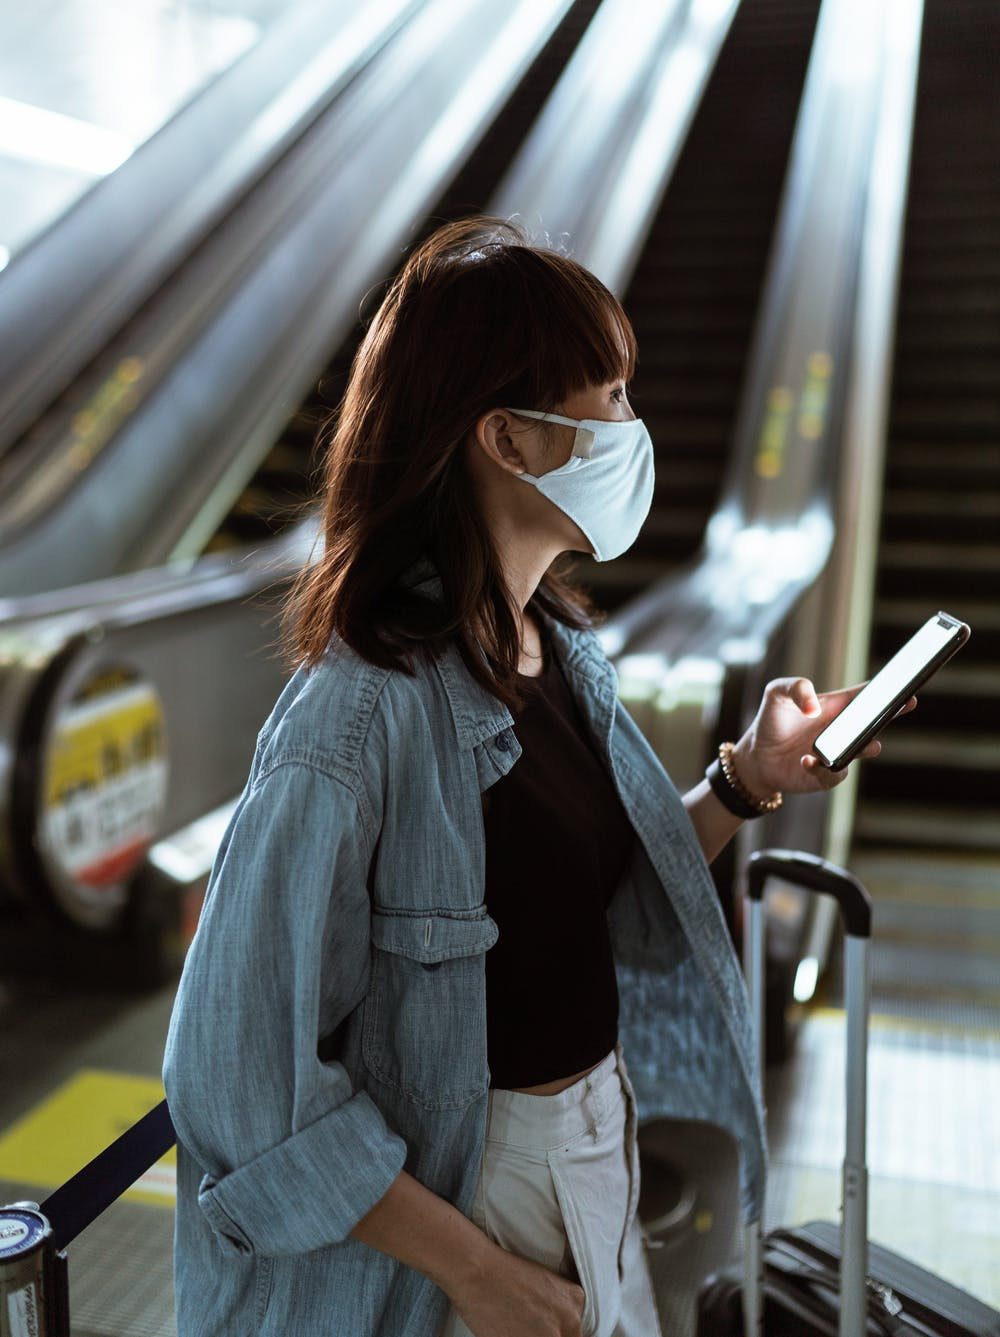 Traveler at the Airport in US during pandemic